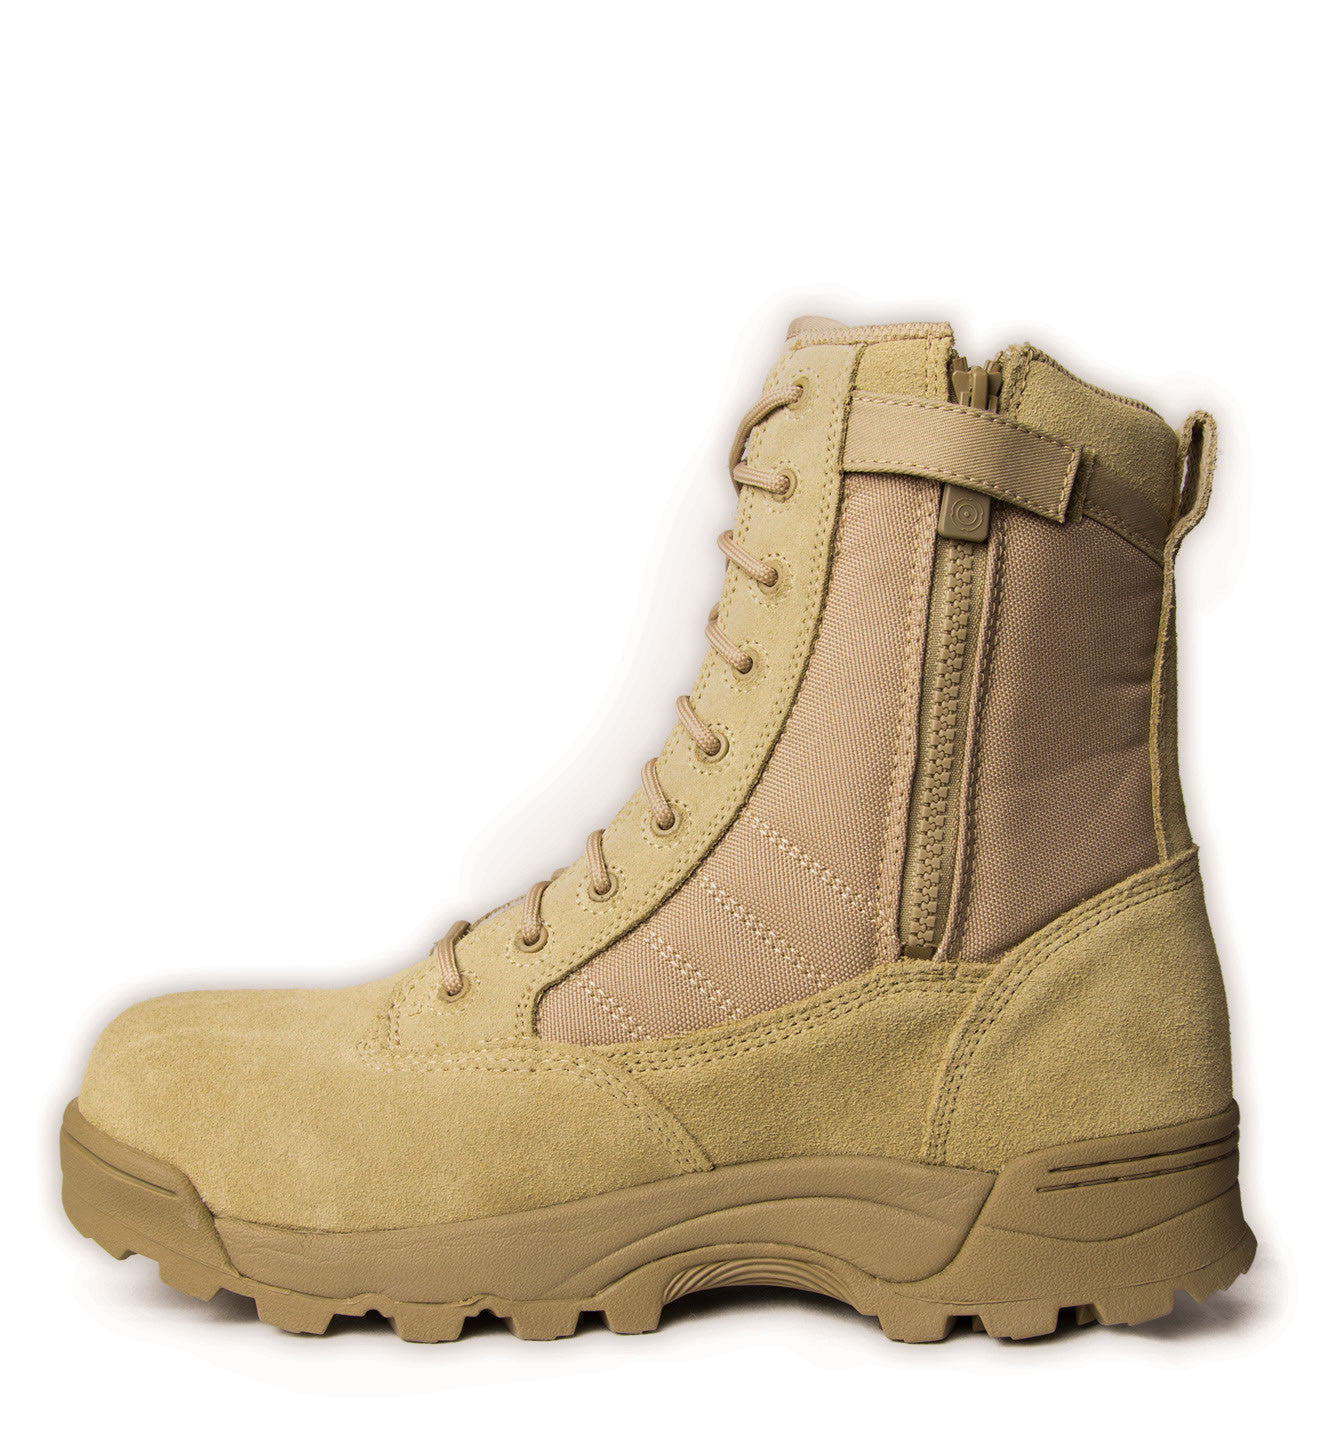 Original Swat Side Zip Steel Toe Boots Desert Tan Boot